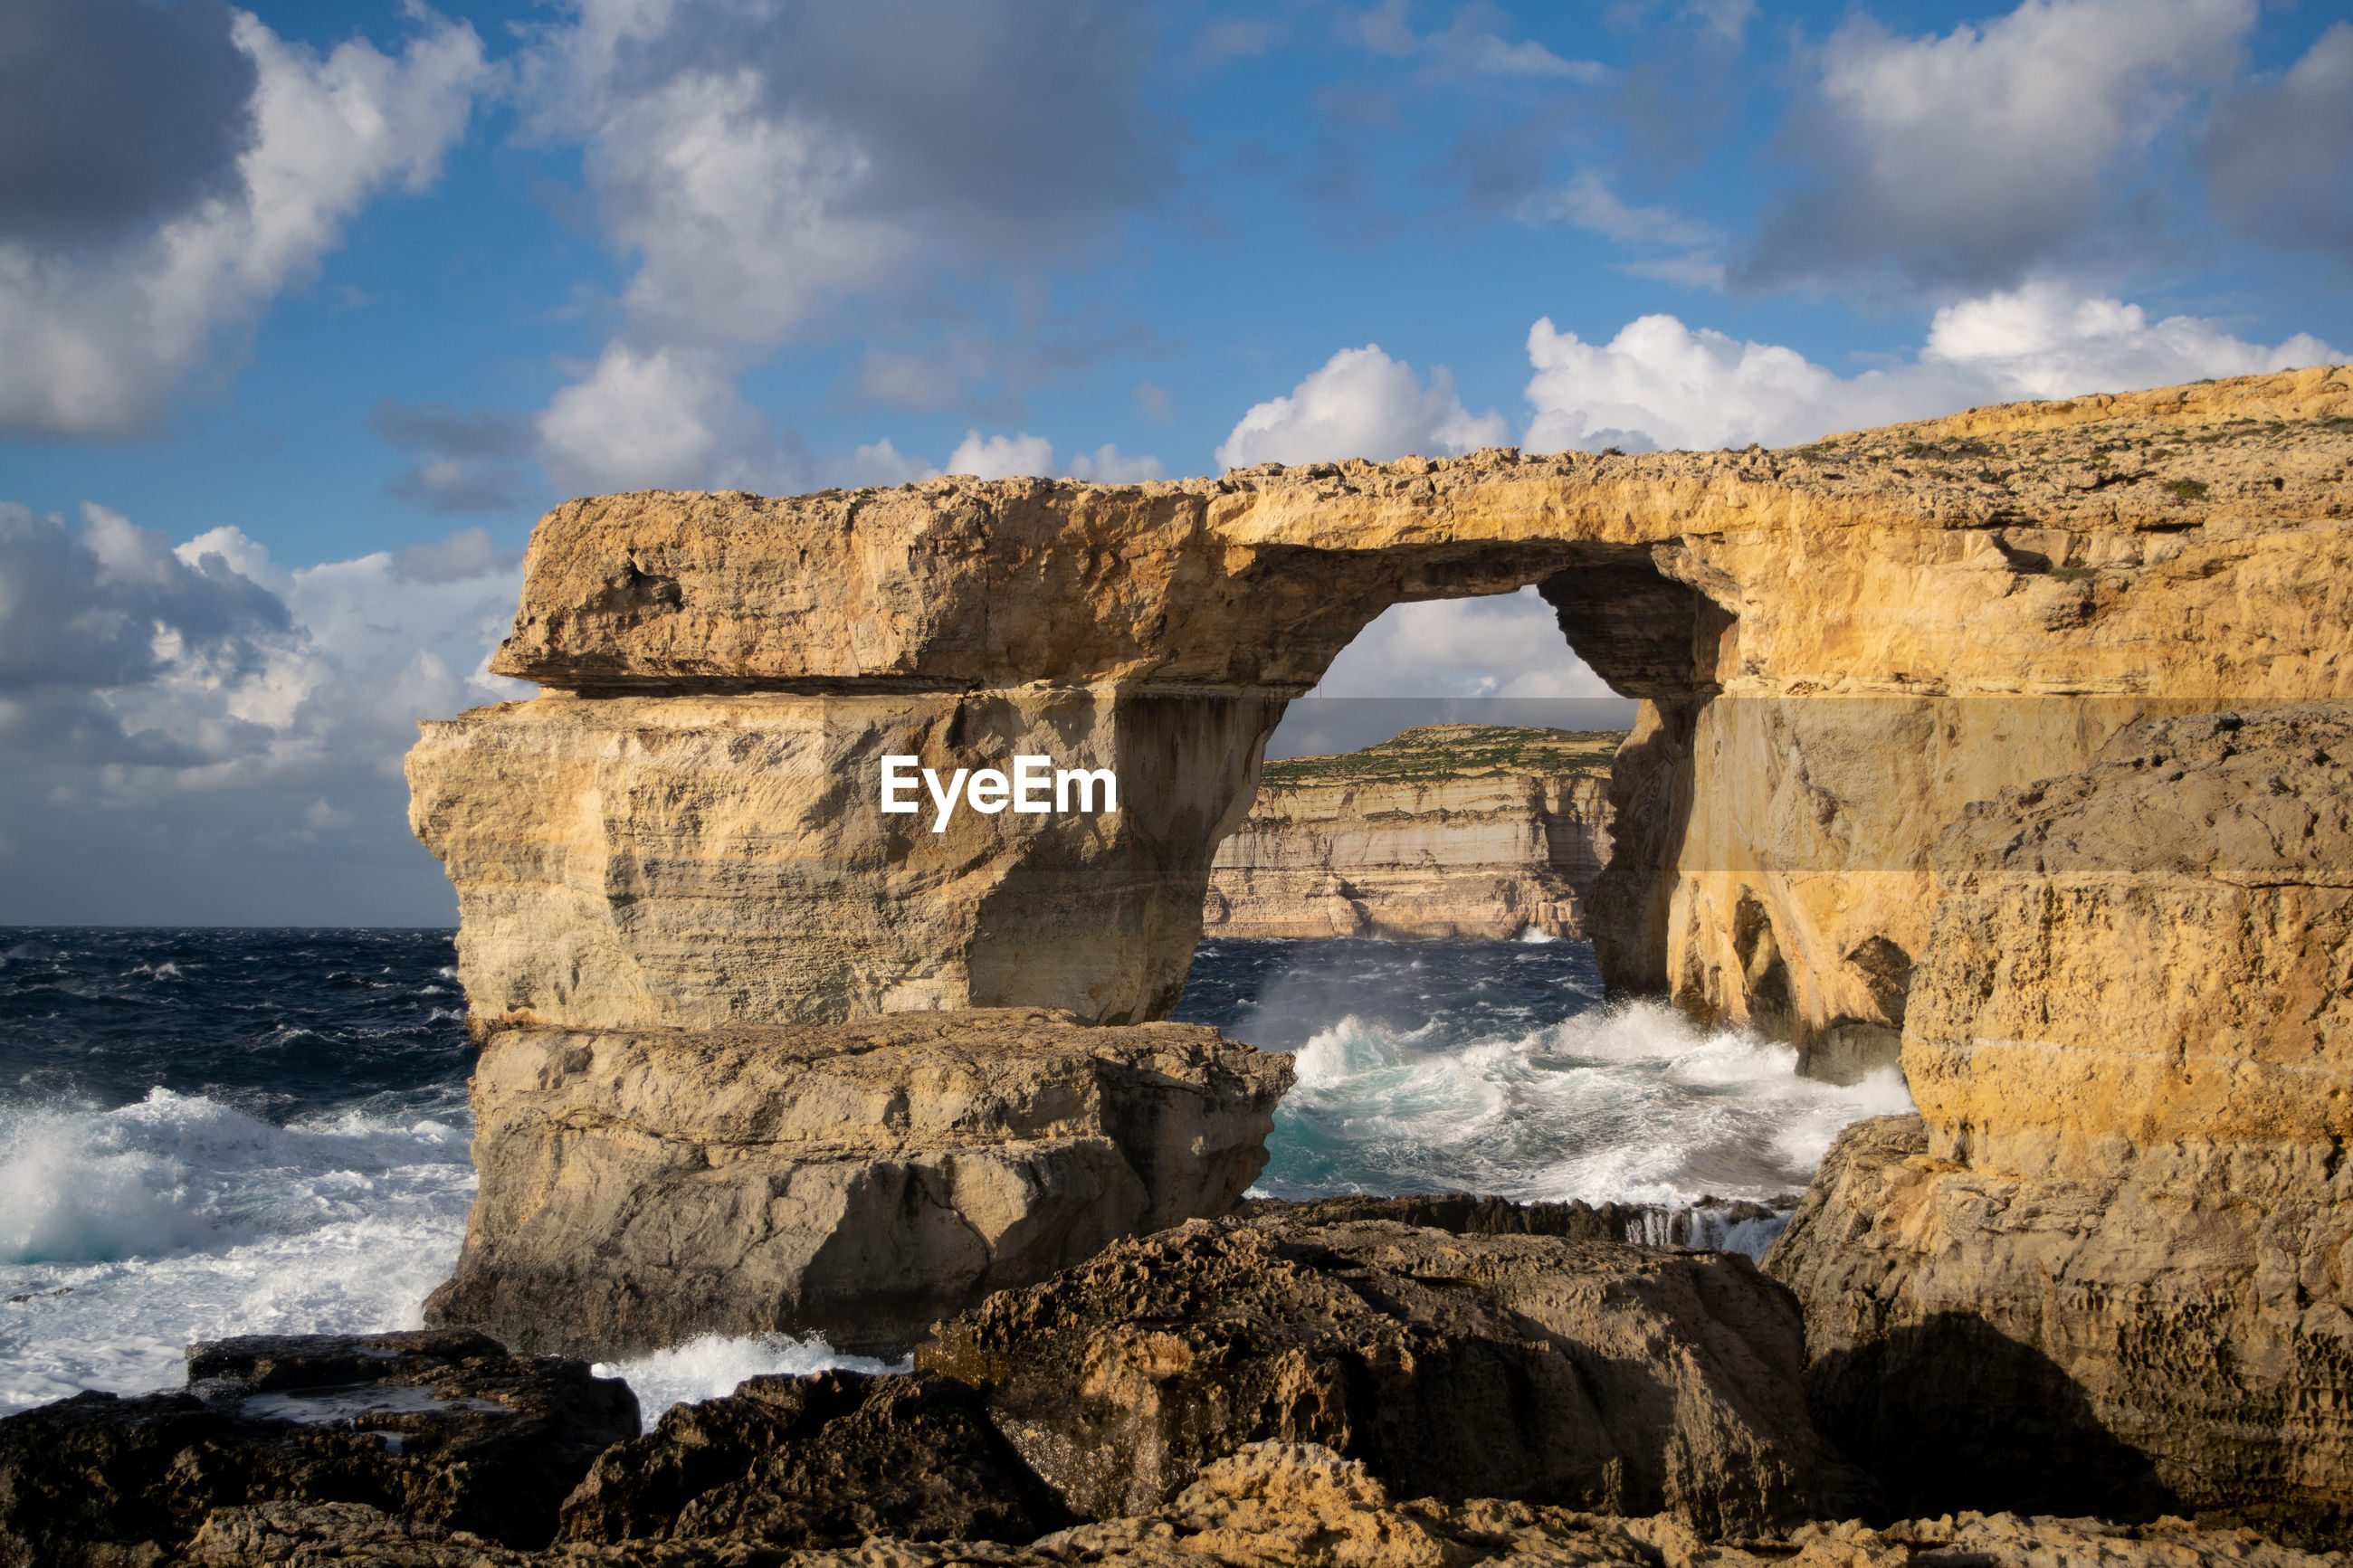 VIEW OF ROCK FORMATION ON BEACH